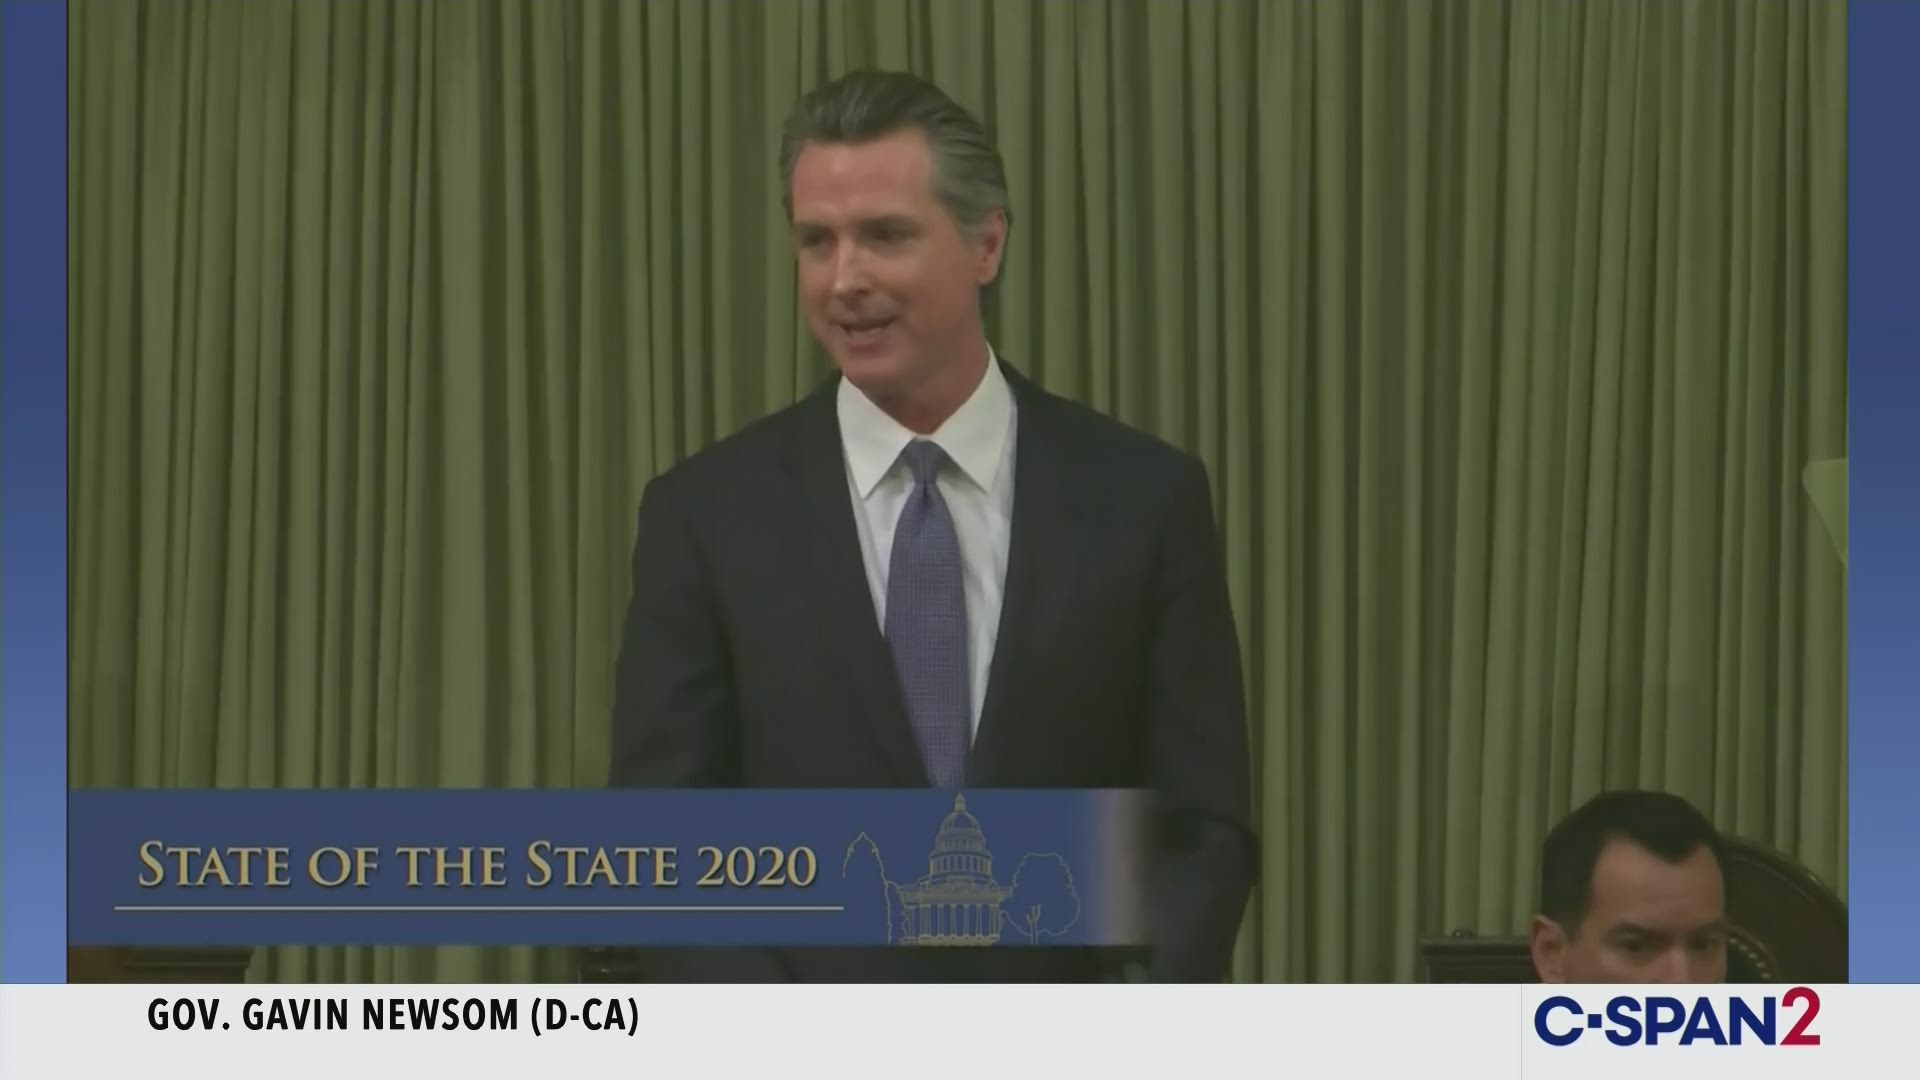 Newsom Says Tomorrow's State Of The State Speech Will Be About Farm Workers, Women, Children, Caregivers And CA's Bright Future